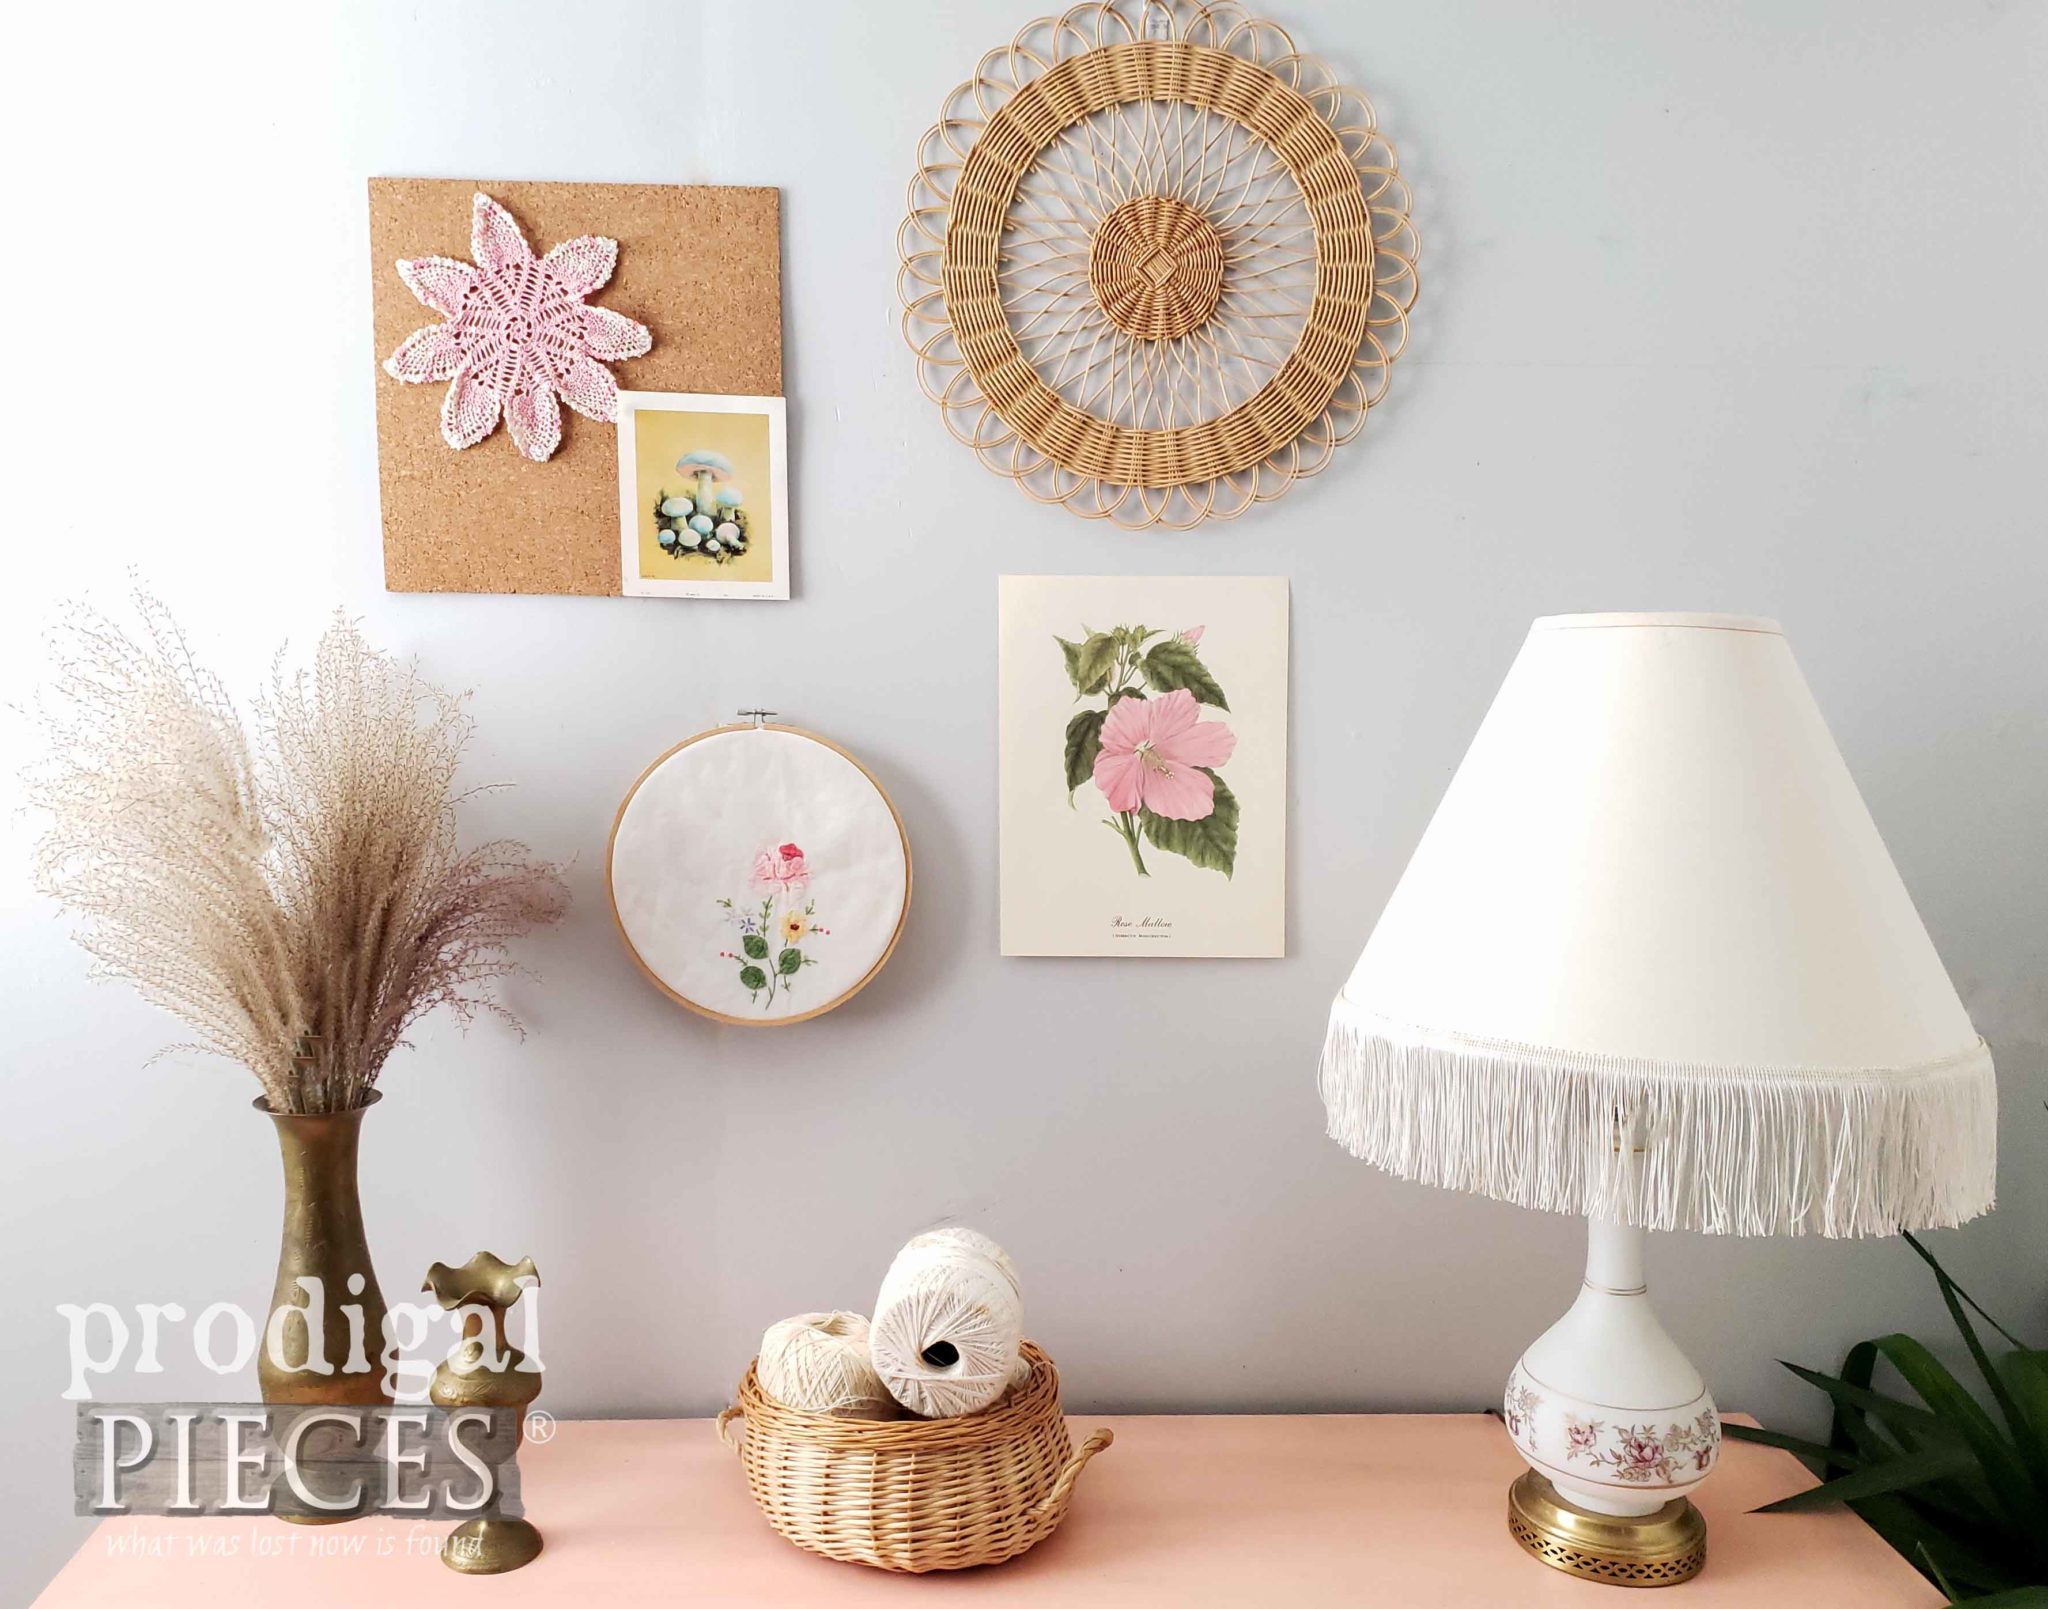 Vintage Blush Pink Boho Style Decor by Larissa of Prodigal Pieces | prodigalpieces.com